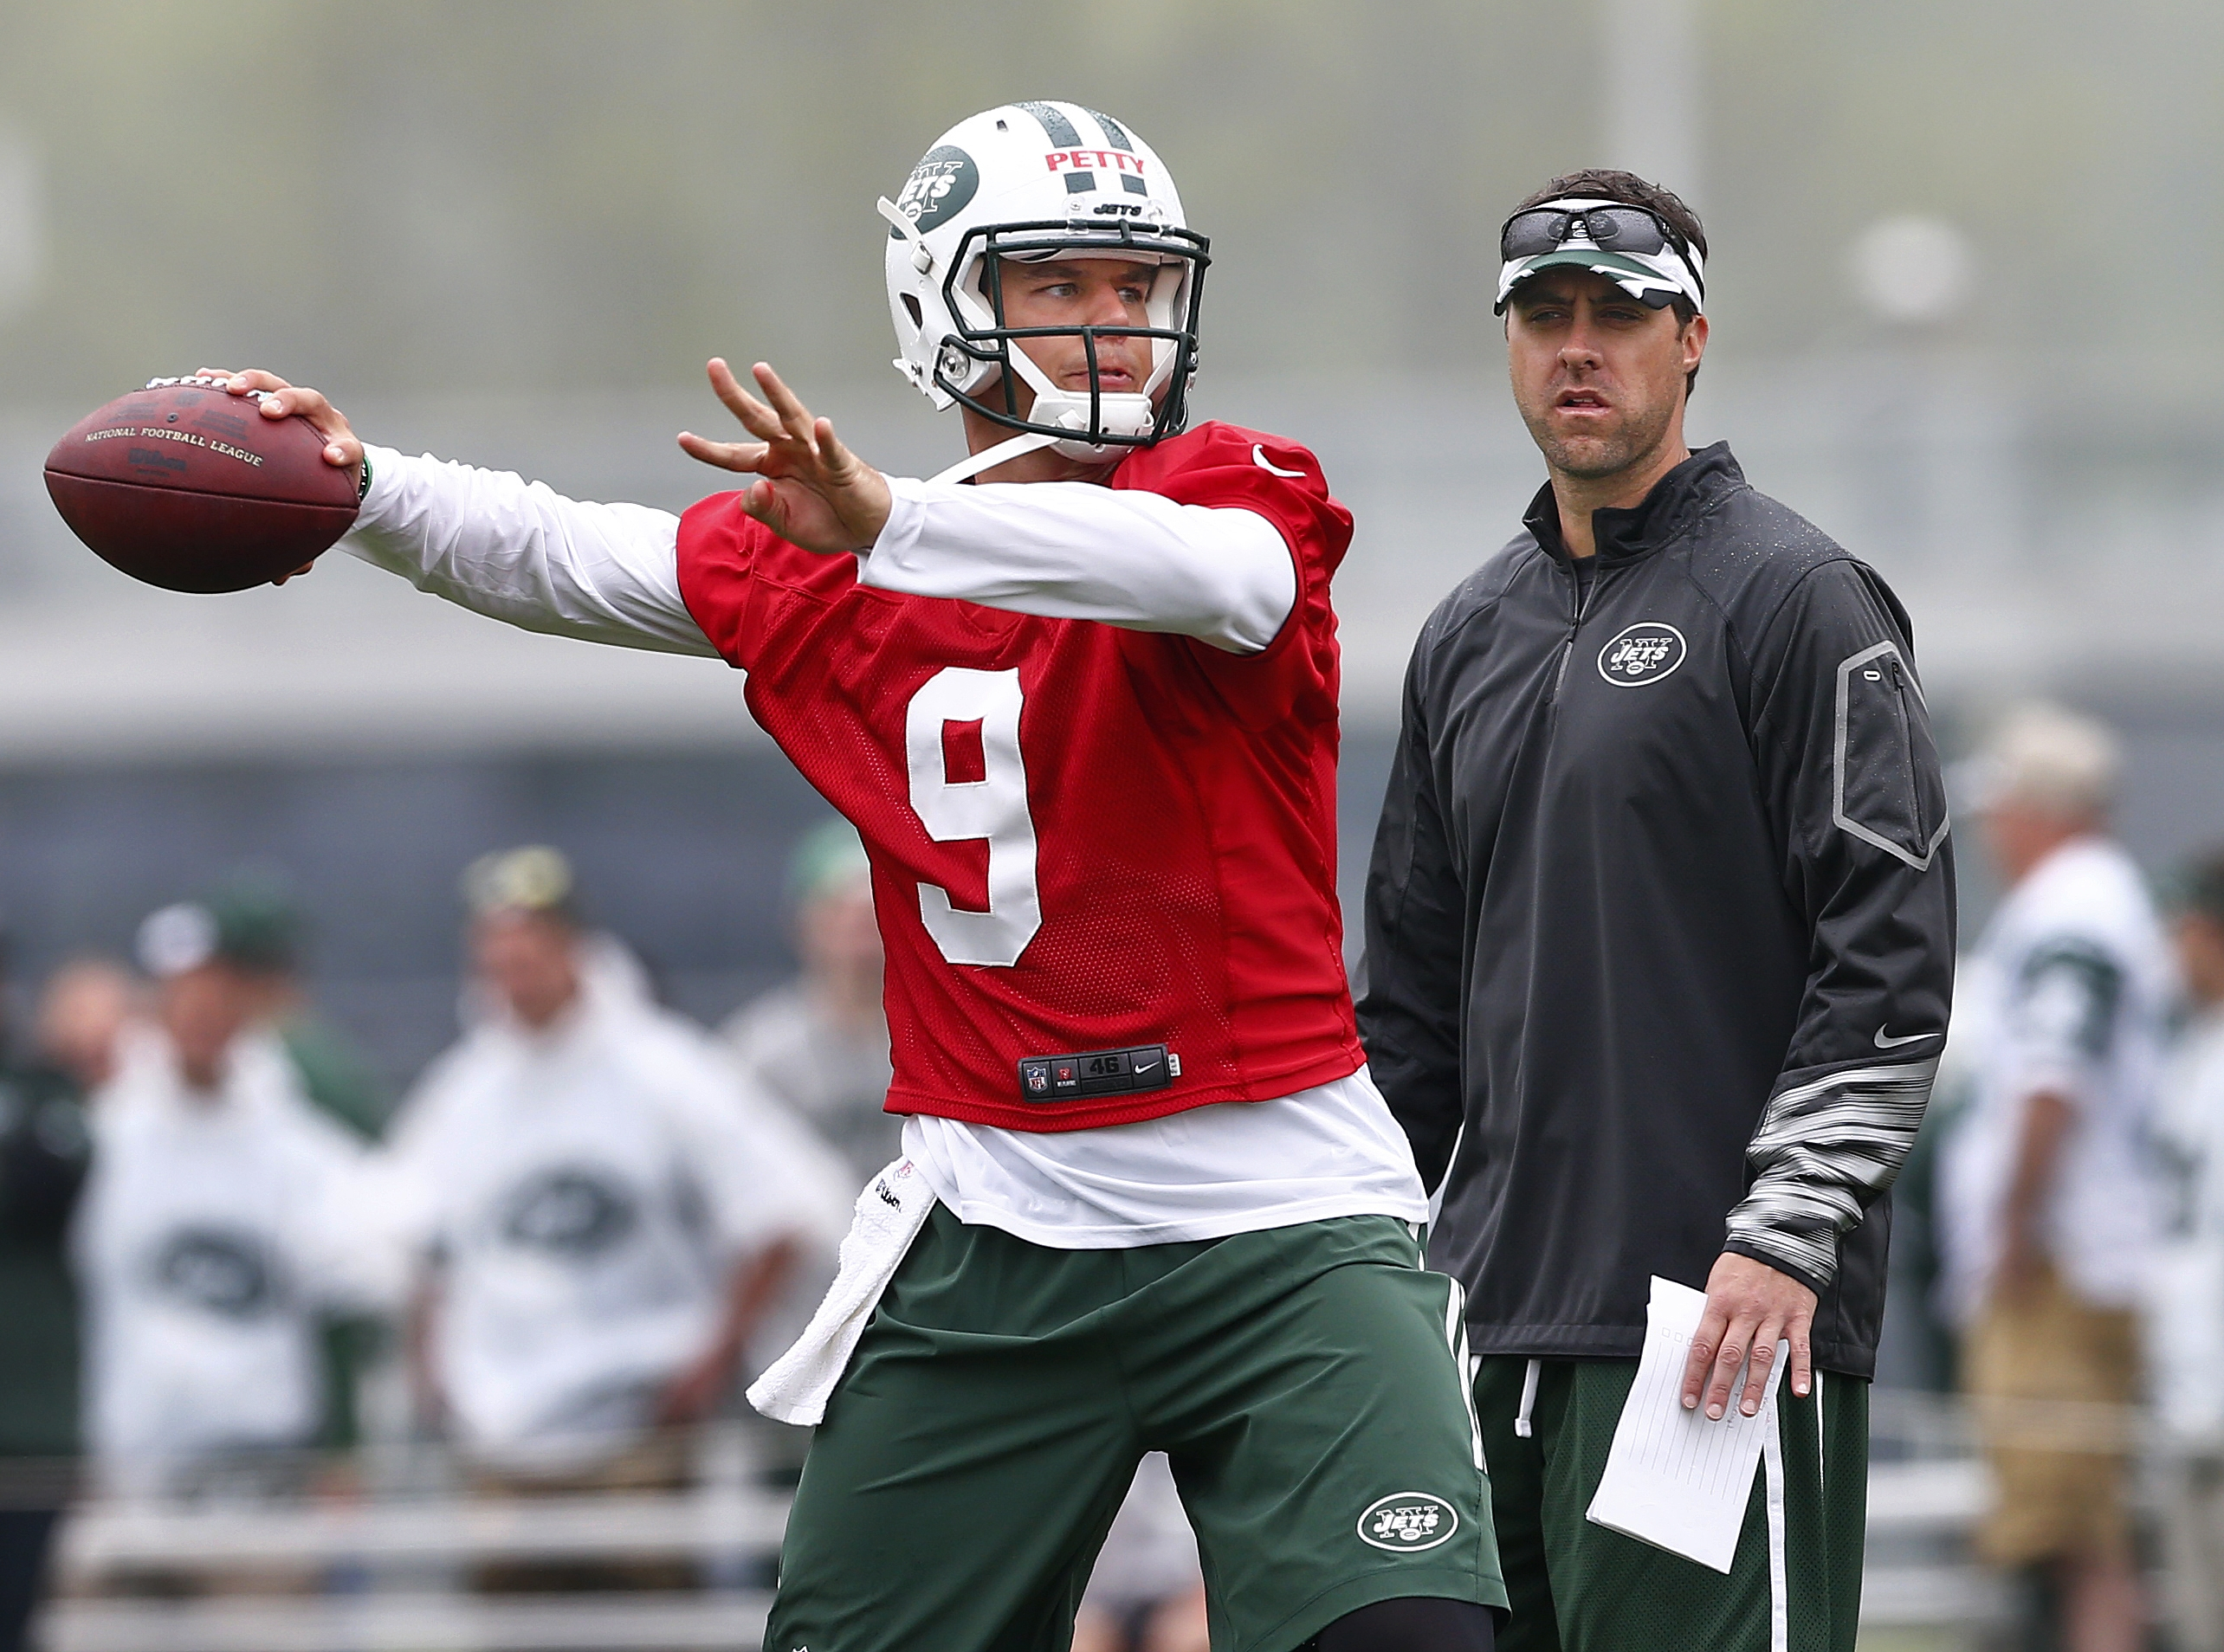 New York Jets quarterback Bryce Petty (9) throws a pass as quarterbacks coach Kevin Patullo watches during practice at the team's NFL football rookie minicamp, Saturday, May 9, 2015, in Florham Park, N.J. (AP Photo/Rich Schultz)